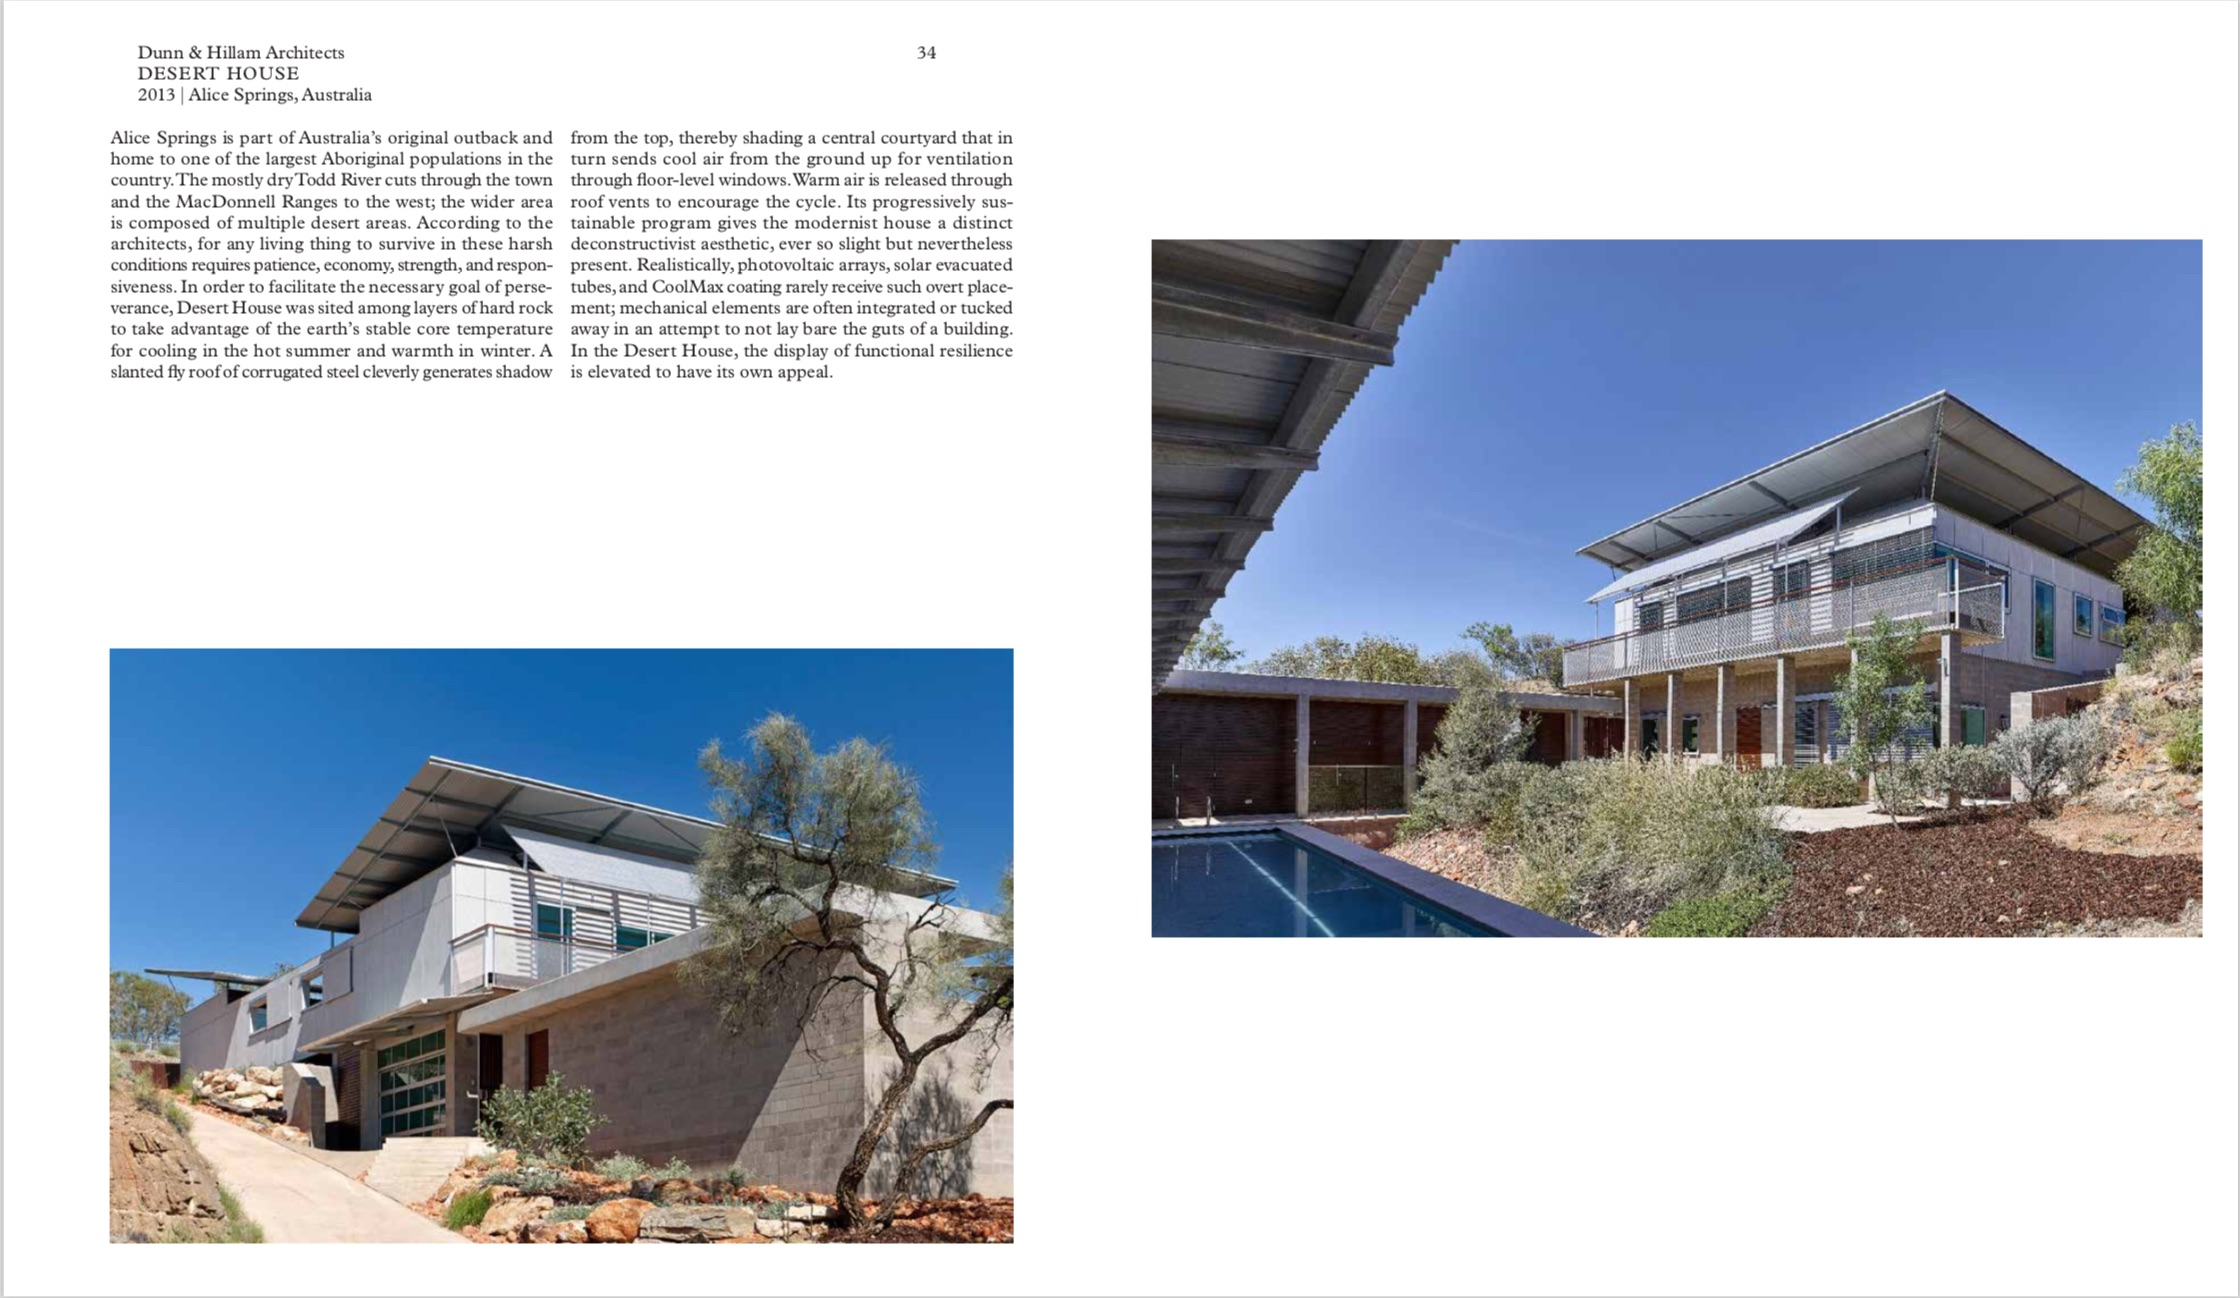 By Phaidon Editors from Living in the Desert copyright Phaidon 2018